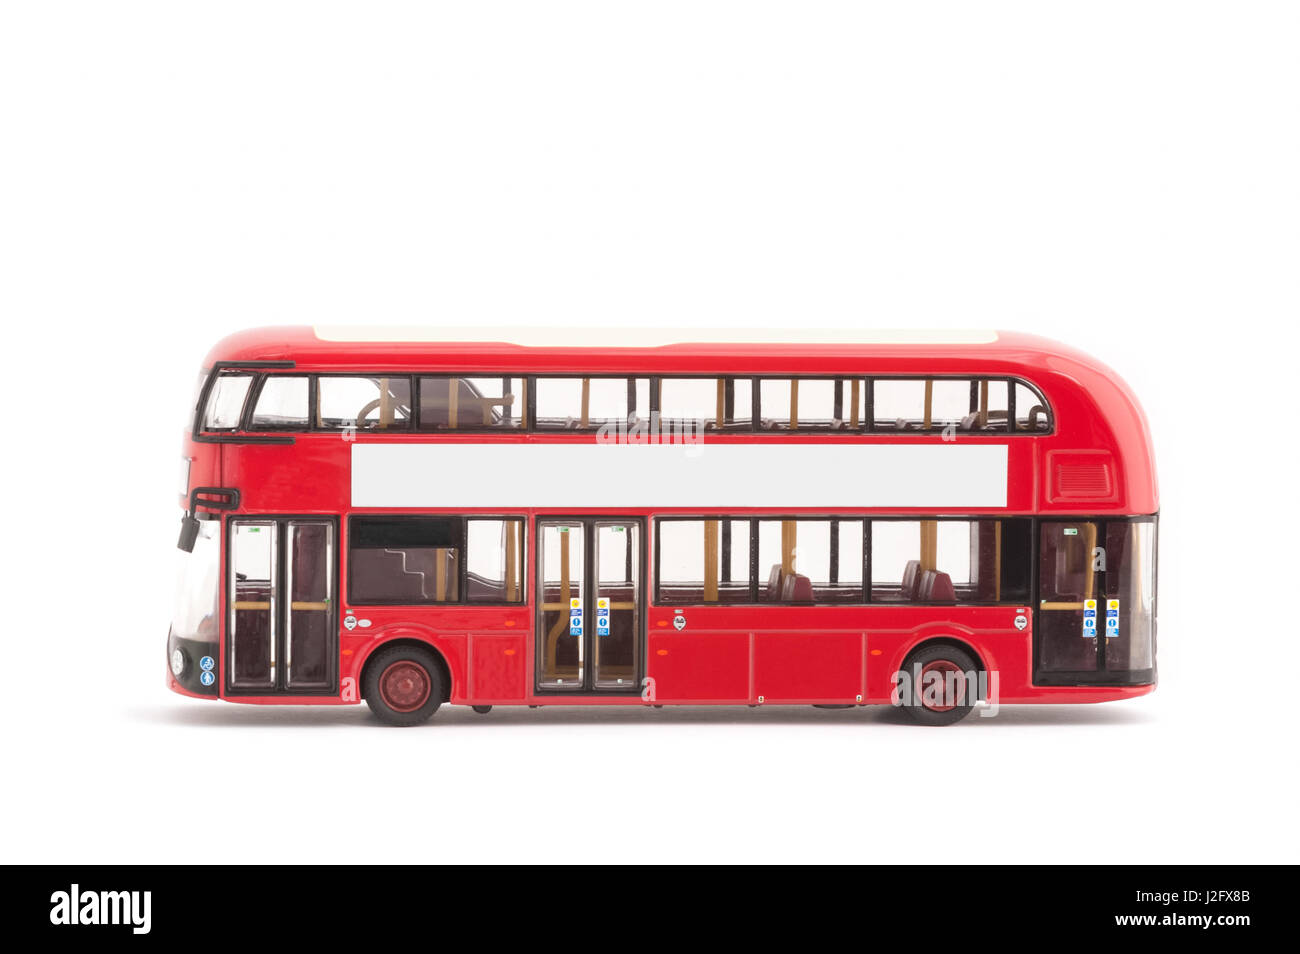 miniature model of a modern red london bus on a white background - Stock Image